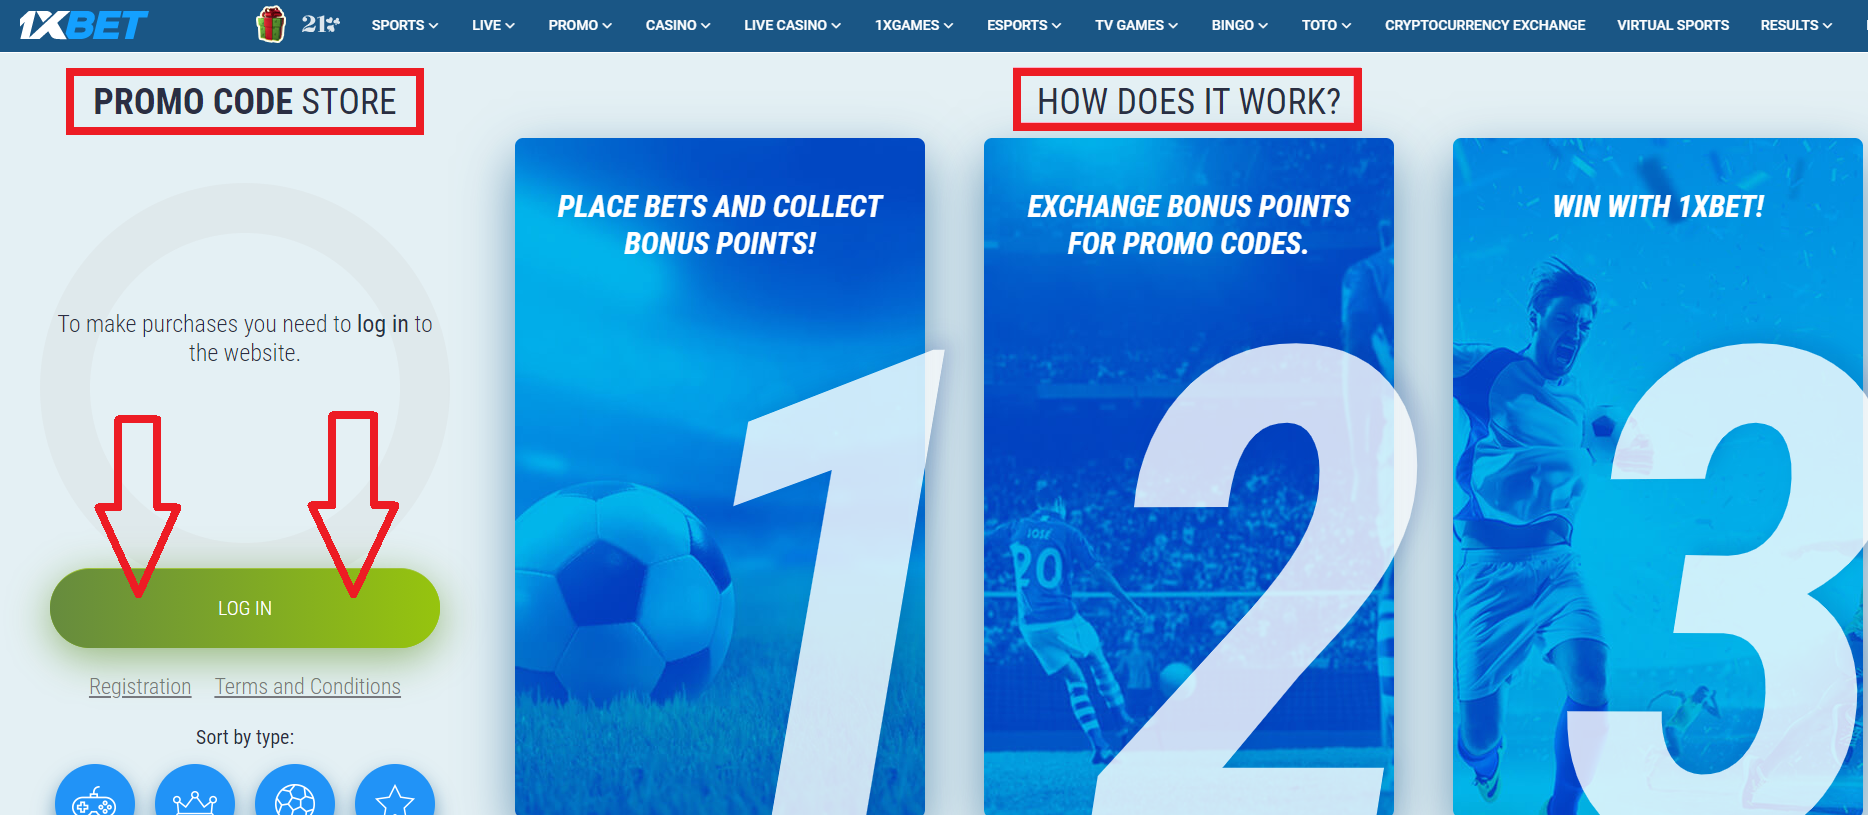 What can I Get With the 2021 promo code for 1xBet nigeria?